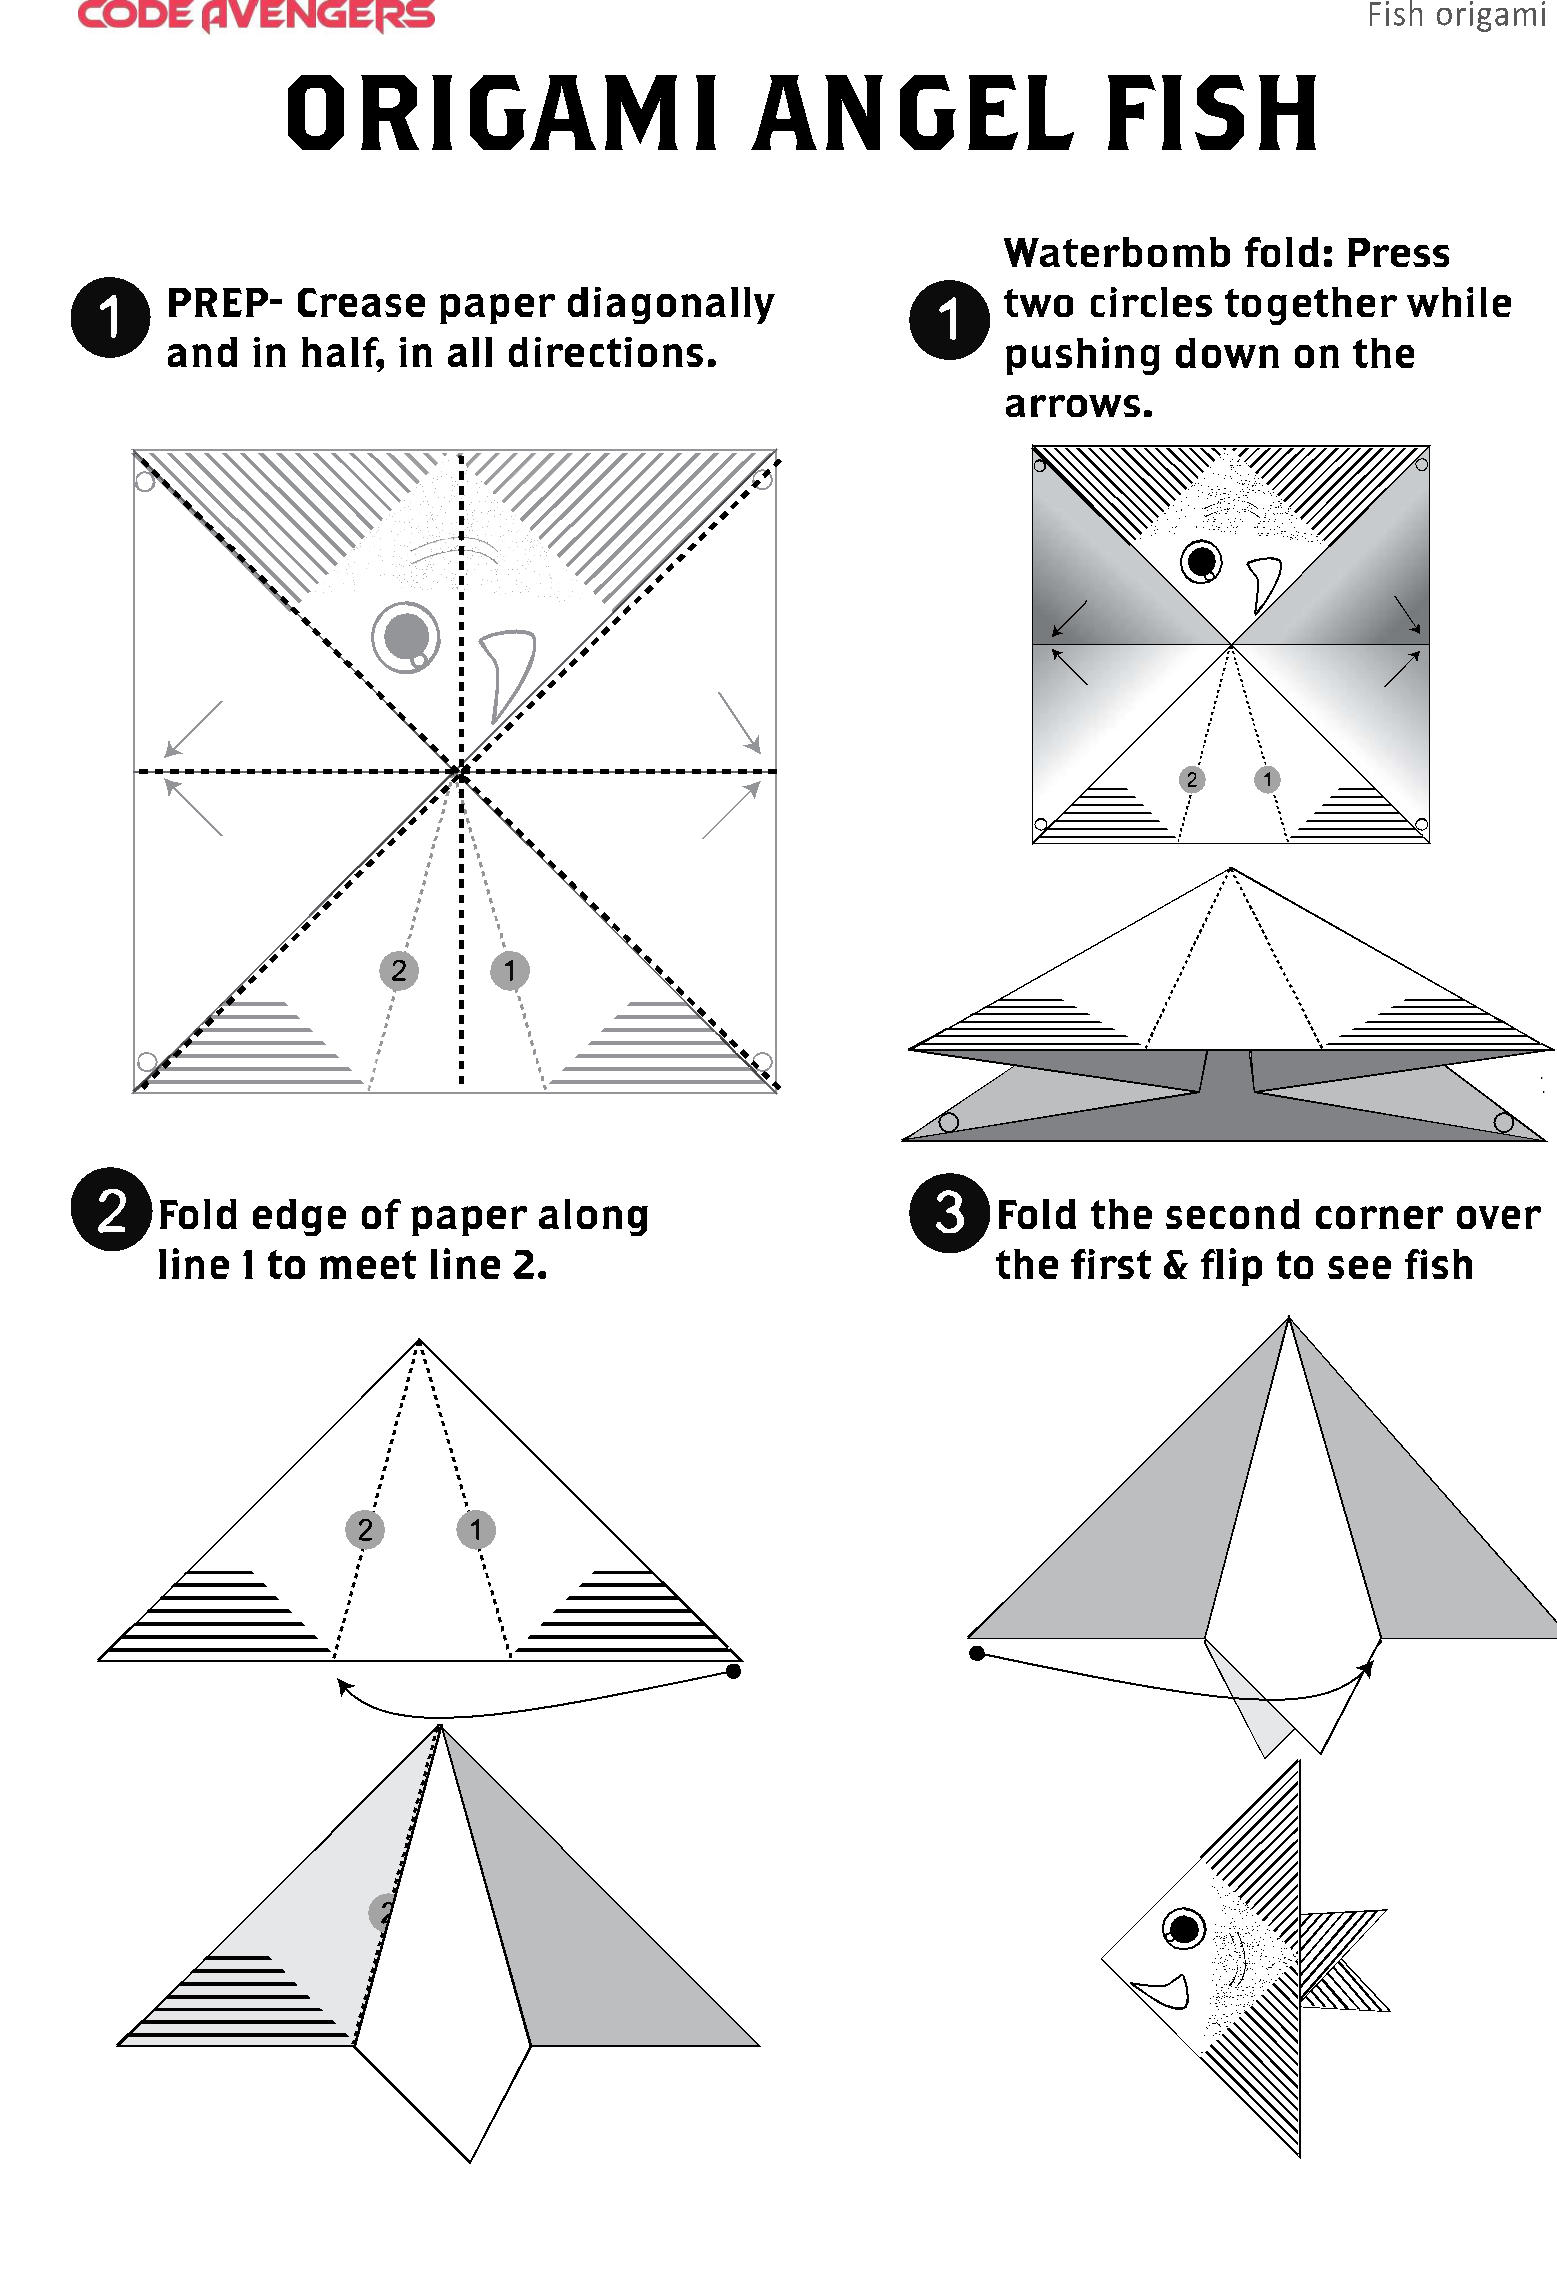 Step-By-Step Instructions for Making an Origami Fish | 2272x1557